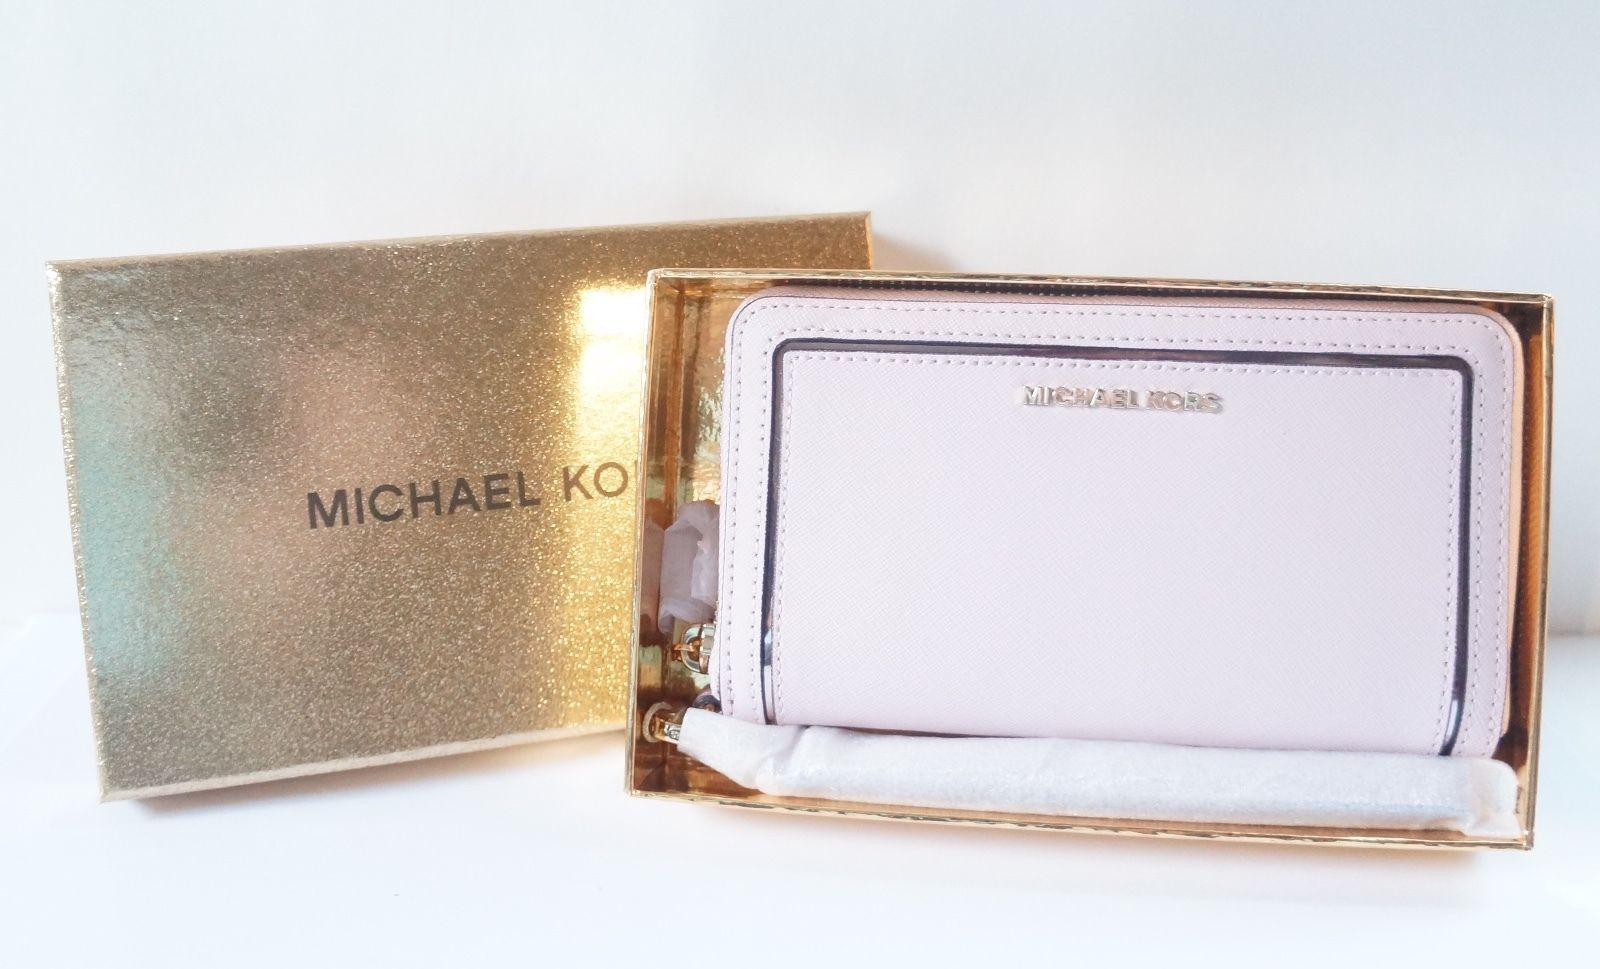 61c5d654e34c S l1600. S l1600. Previous. NWT MICHAEL KORS FRAME OUT LARGE FLAT MULTIFUNCTION  PHONE CASE - BLOSSOM